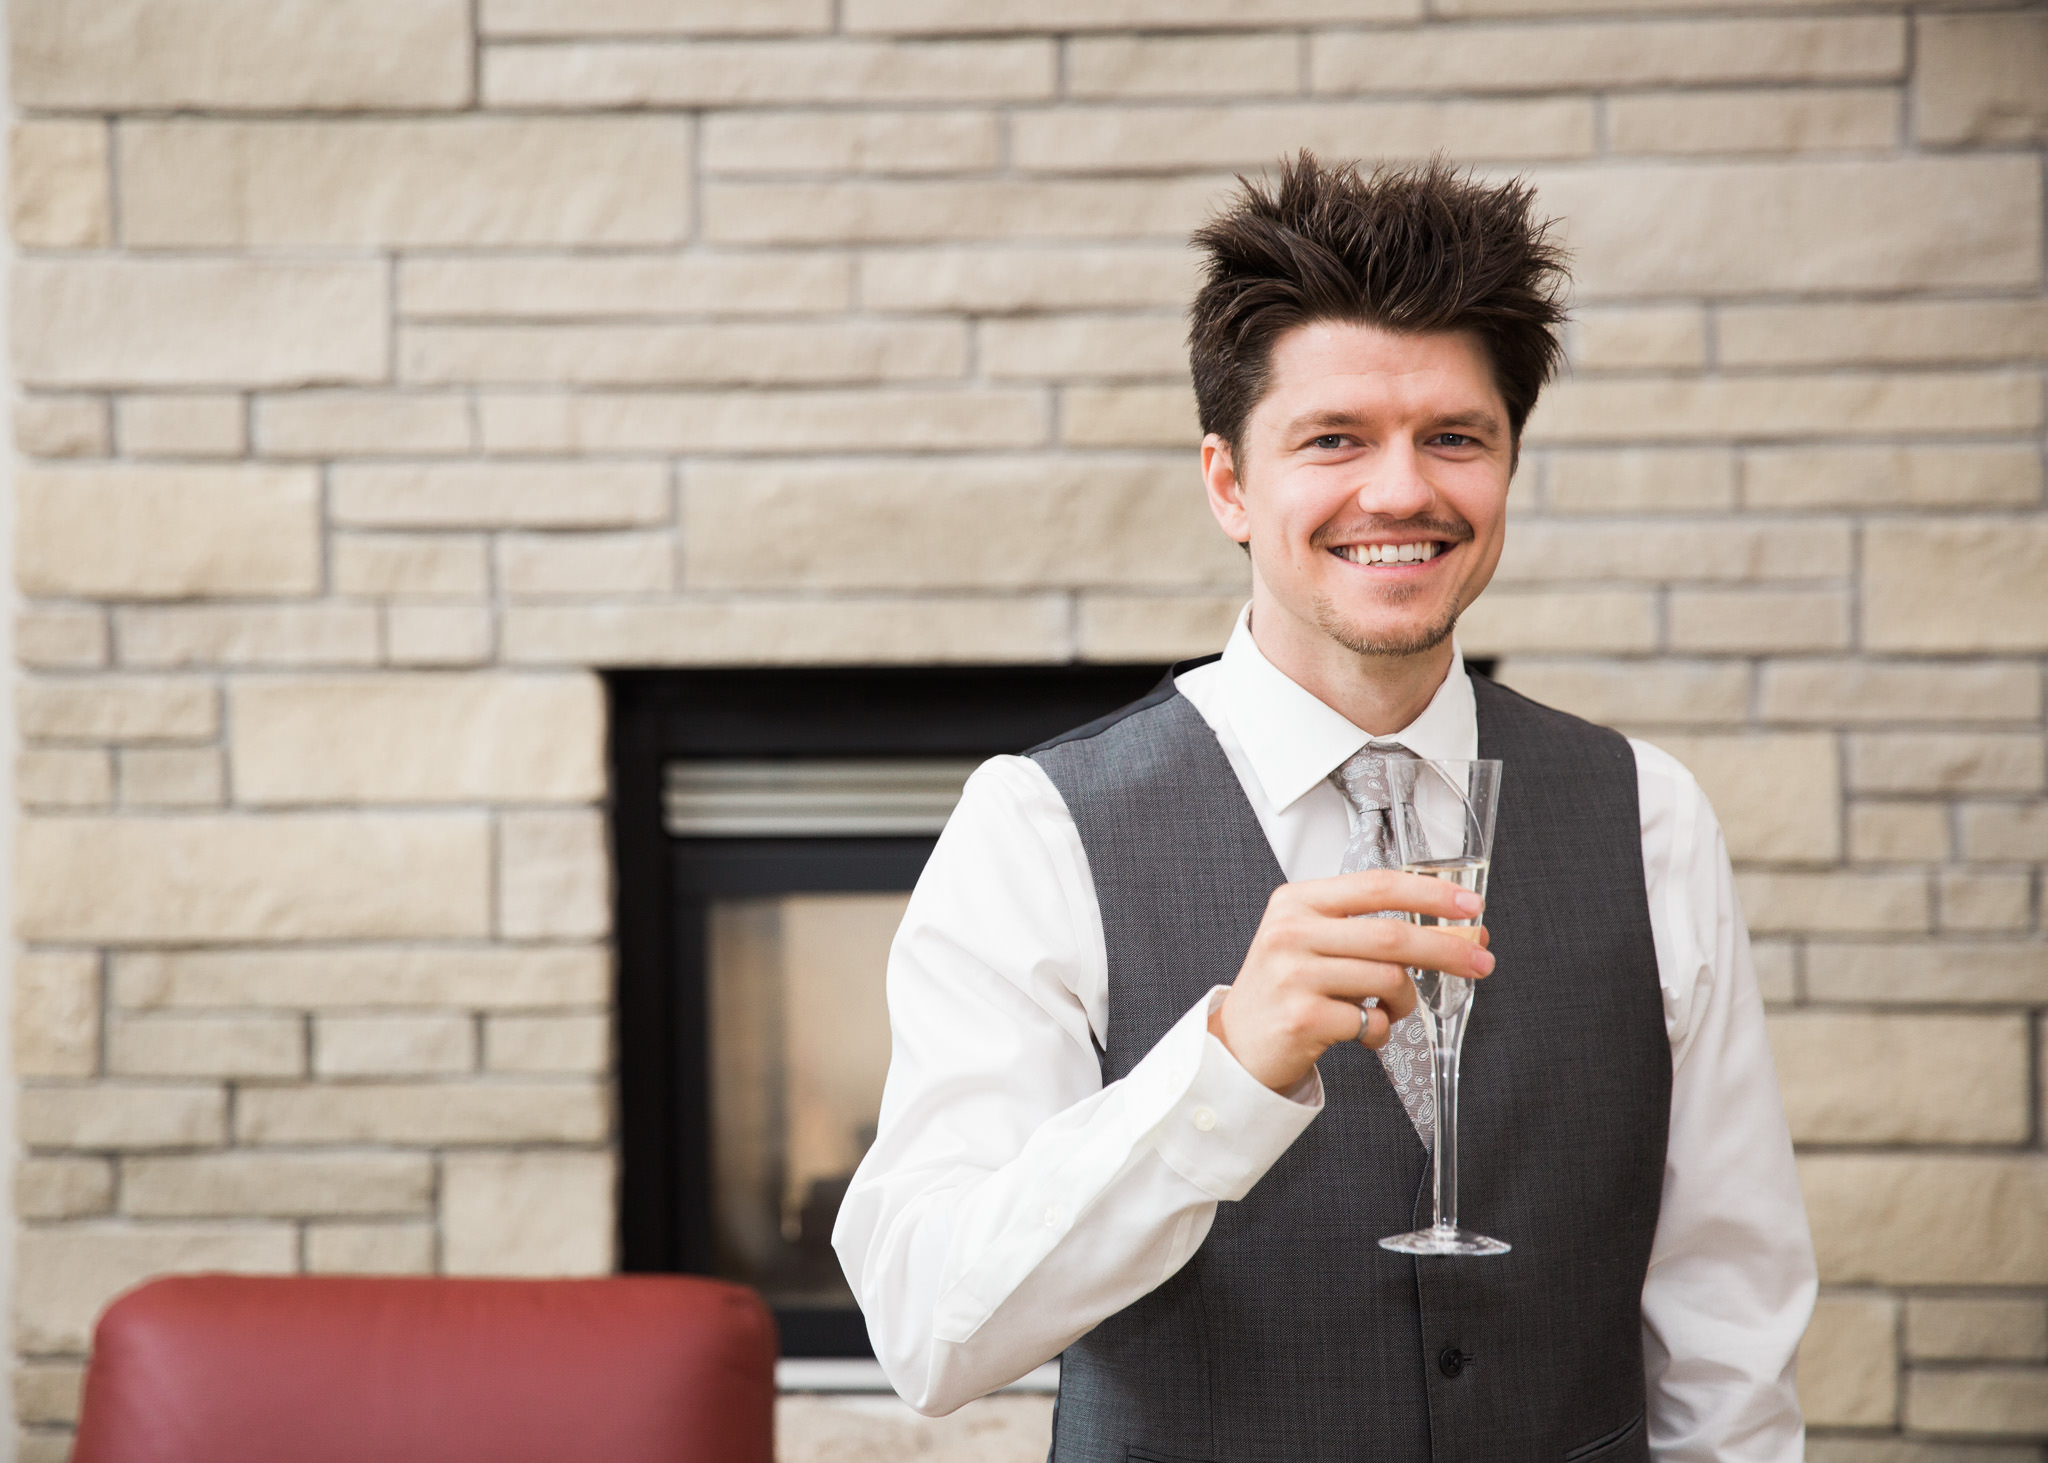 groom drinking champagne on wedding day in front of fireplace